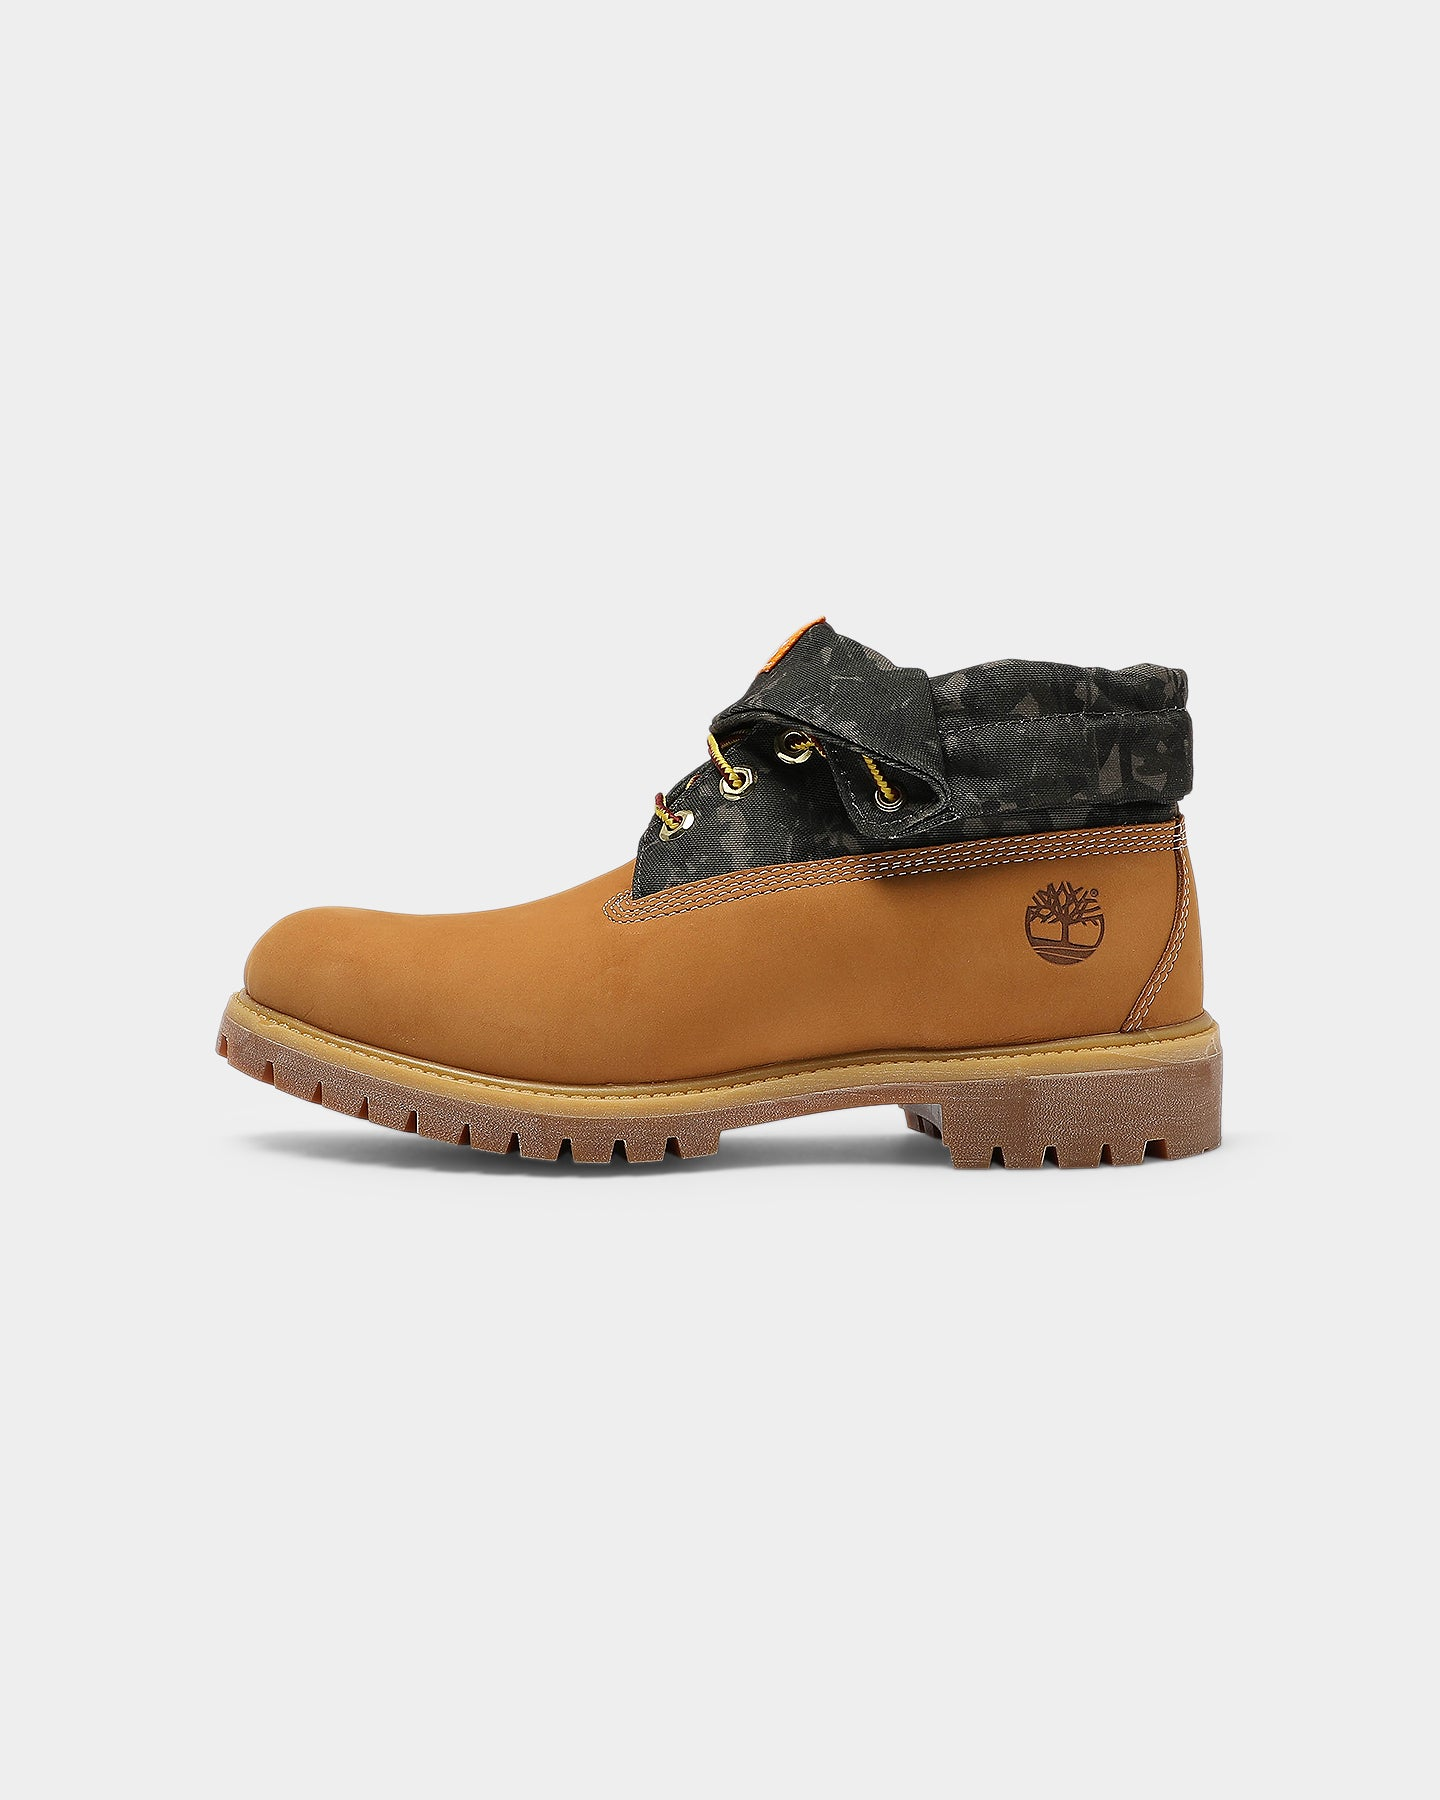 Timberland Women's Roll Top Boots Blue With White Logo